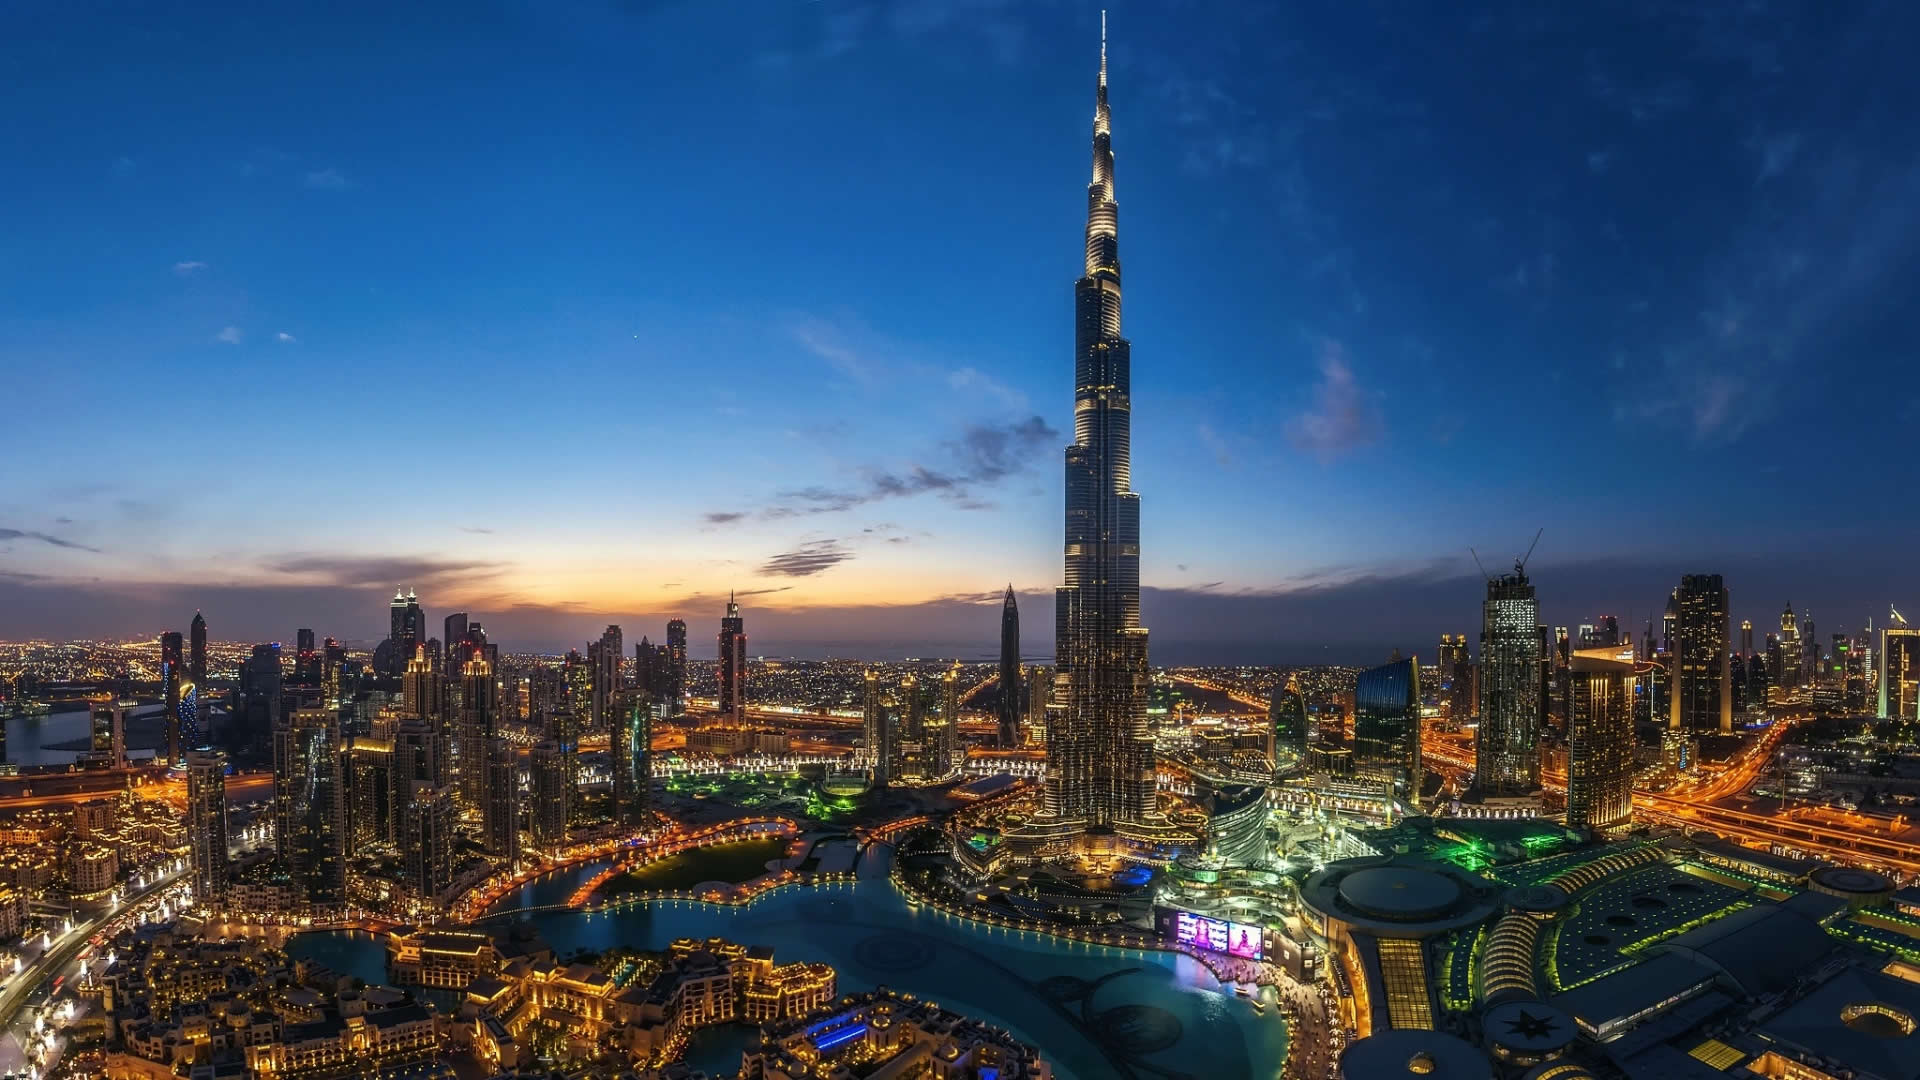 night_dubai_city_burj_khalifa